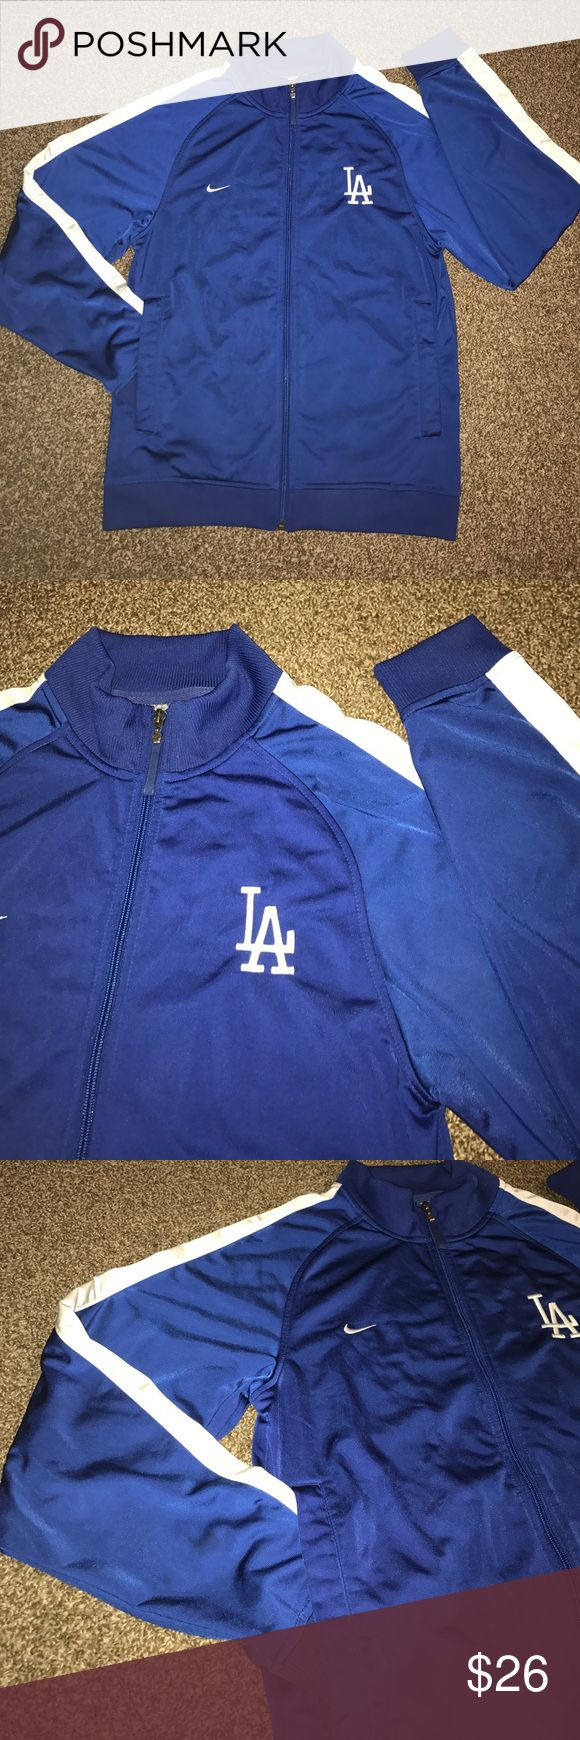 💙⚾️ NIKE LA Dodgers jacket ⚾️💙 Comfortable and classic look to this Nike genuine LA Dodgers jacket. It's in excellent condition and has been worn to many winning games! 100% polyester. It's a small size in men's, but I've worn it and I typically wear a large in tops. Cheer on your boys in blue in style! 💙 Nike Jackets & Coats